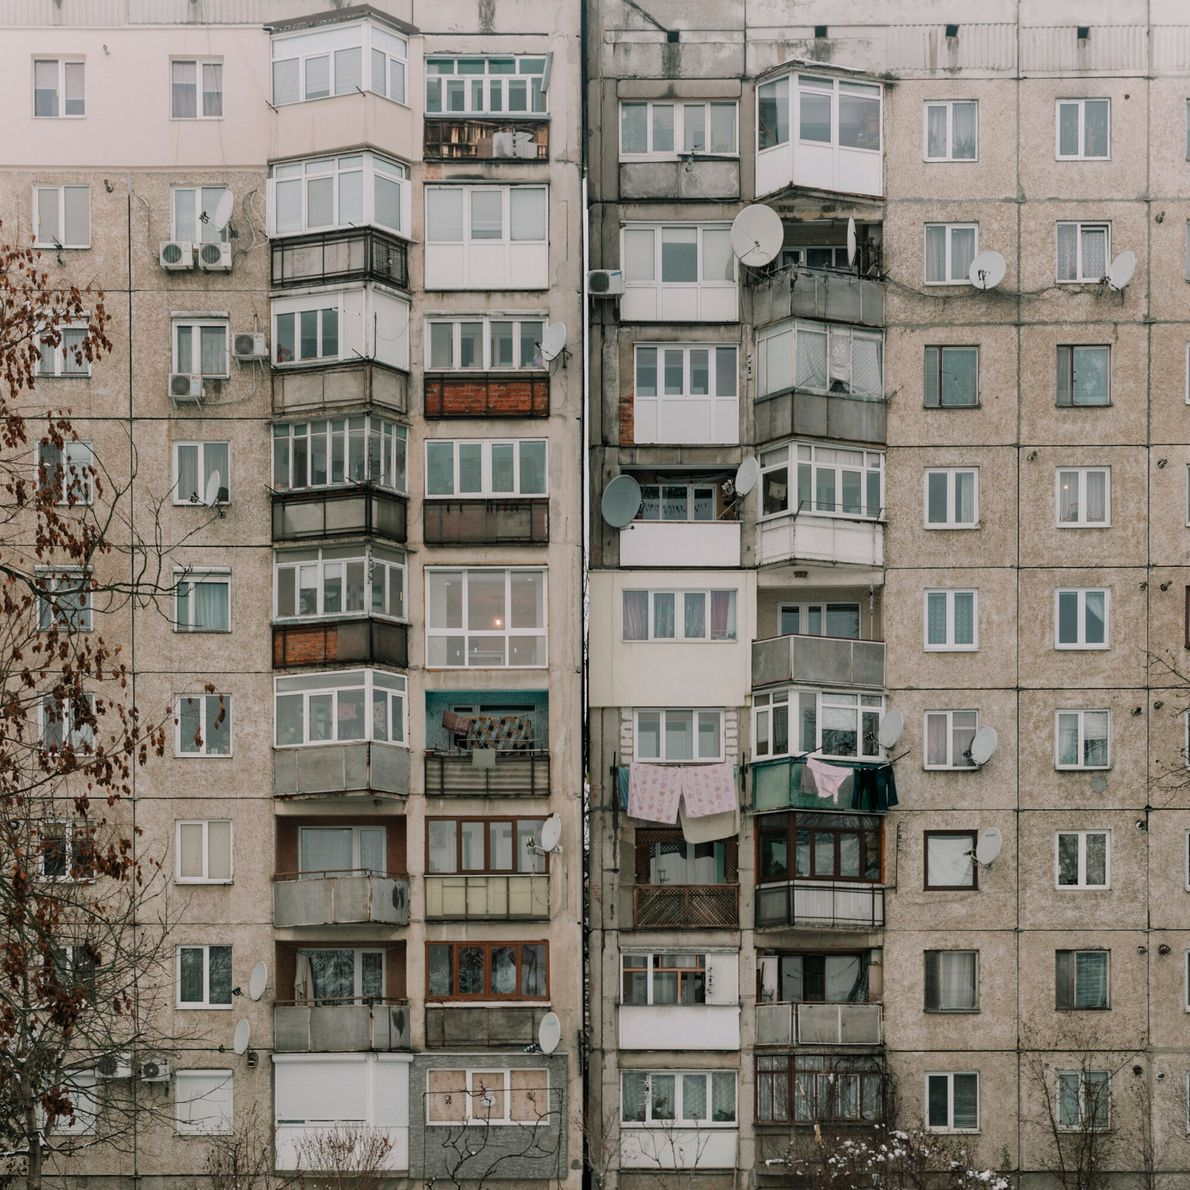 Ukraine, 2018. A block of flats on the site of Mukachevo's ghetto. On August 27 and 28 ...